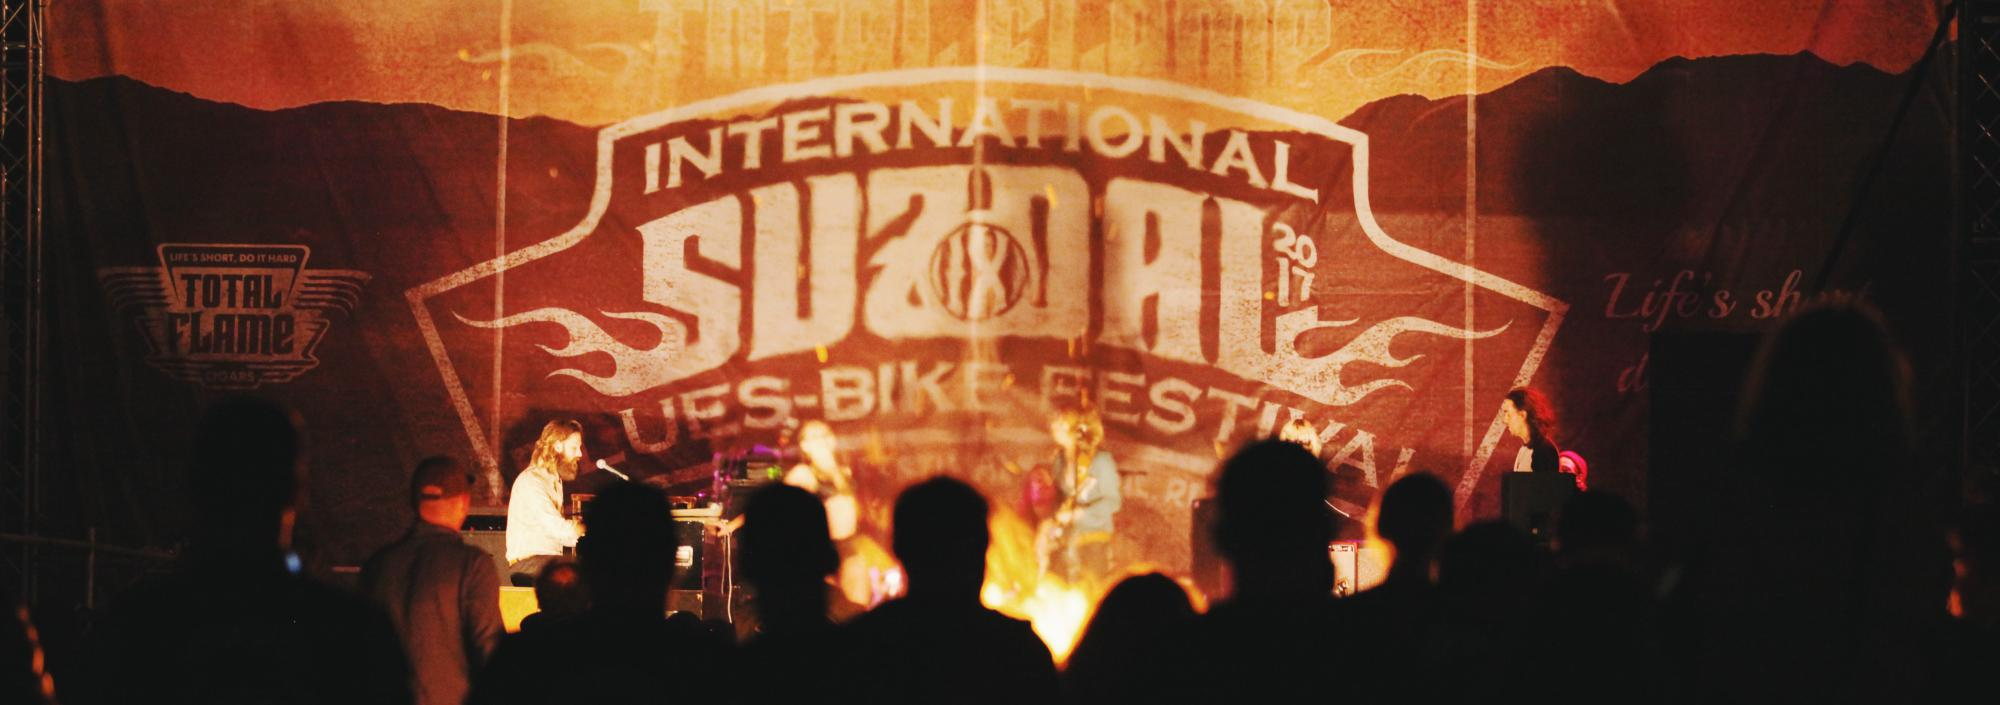 Suzdal International Blues-Bike Festival 2018